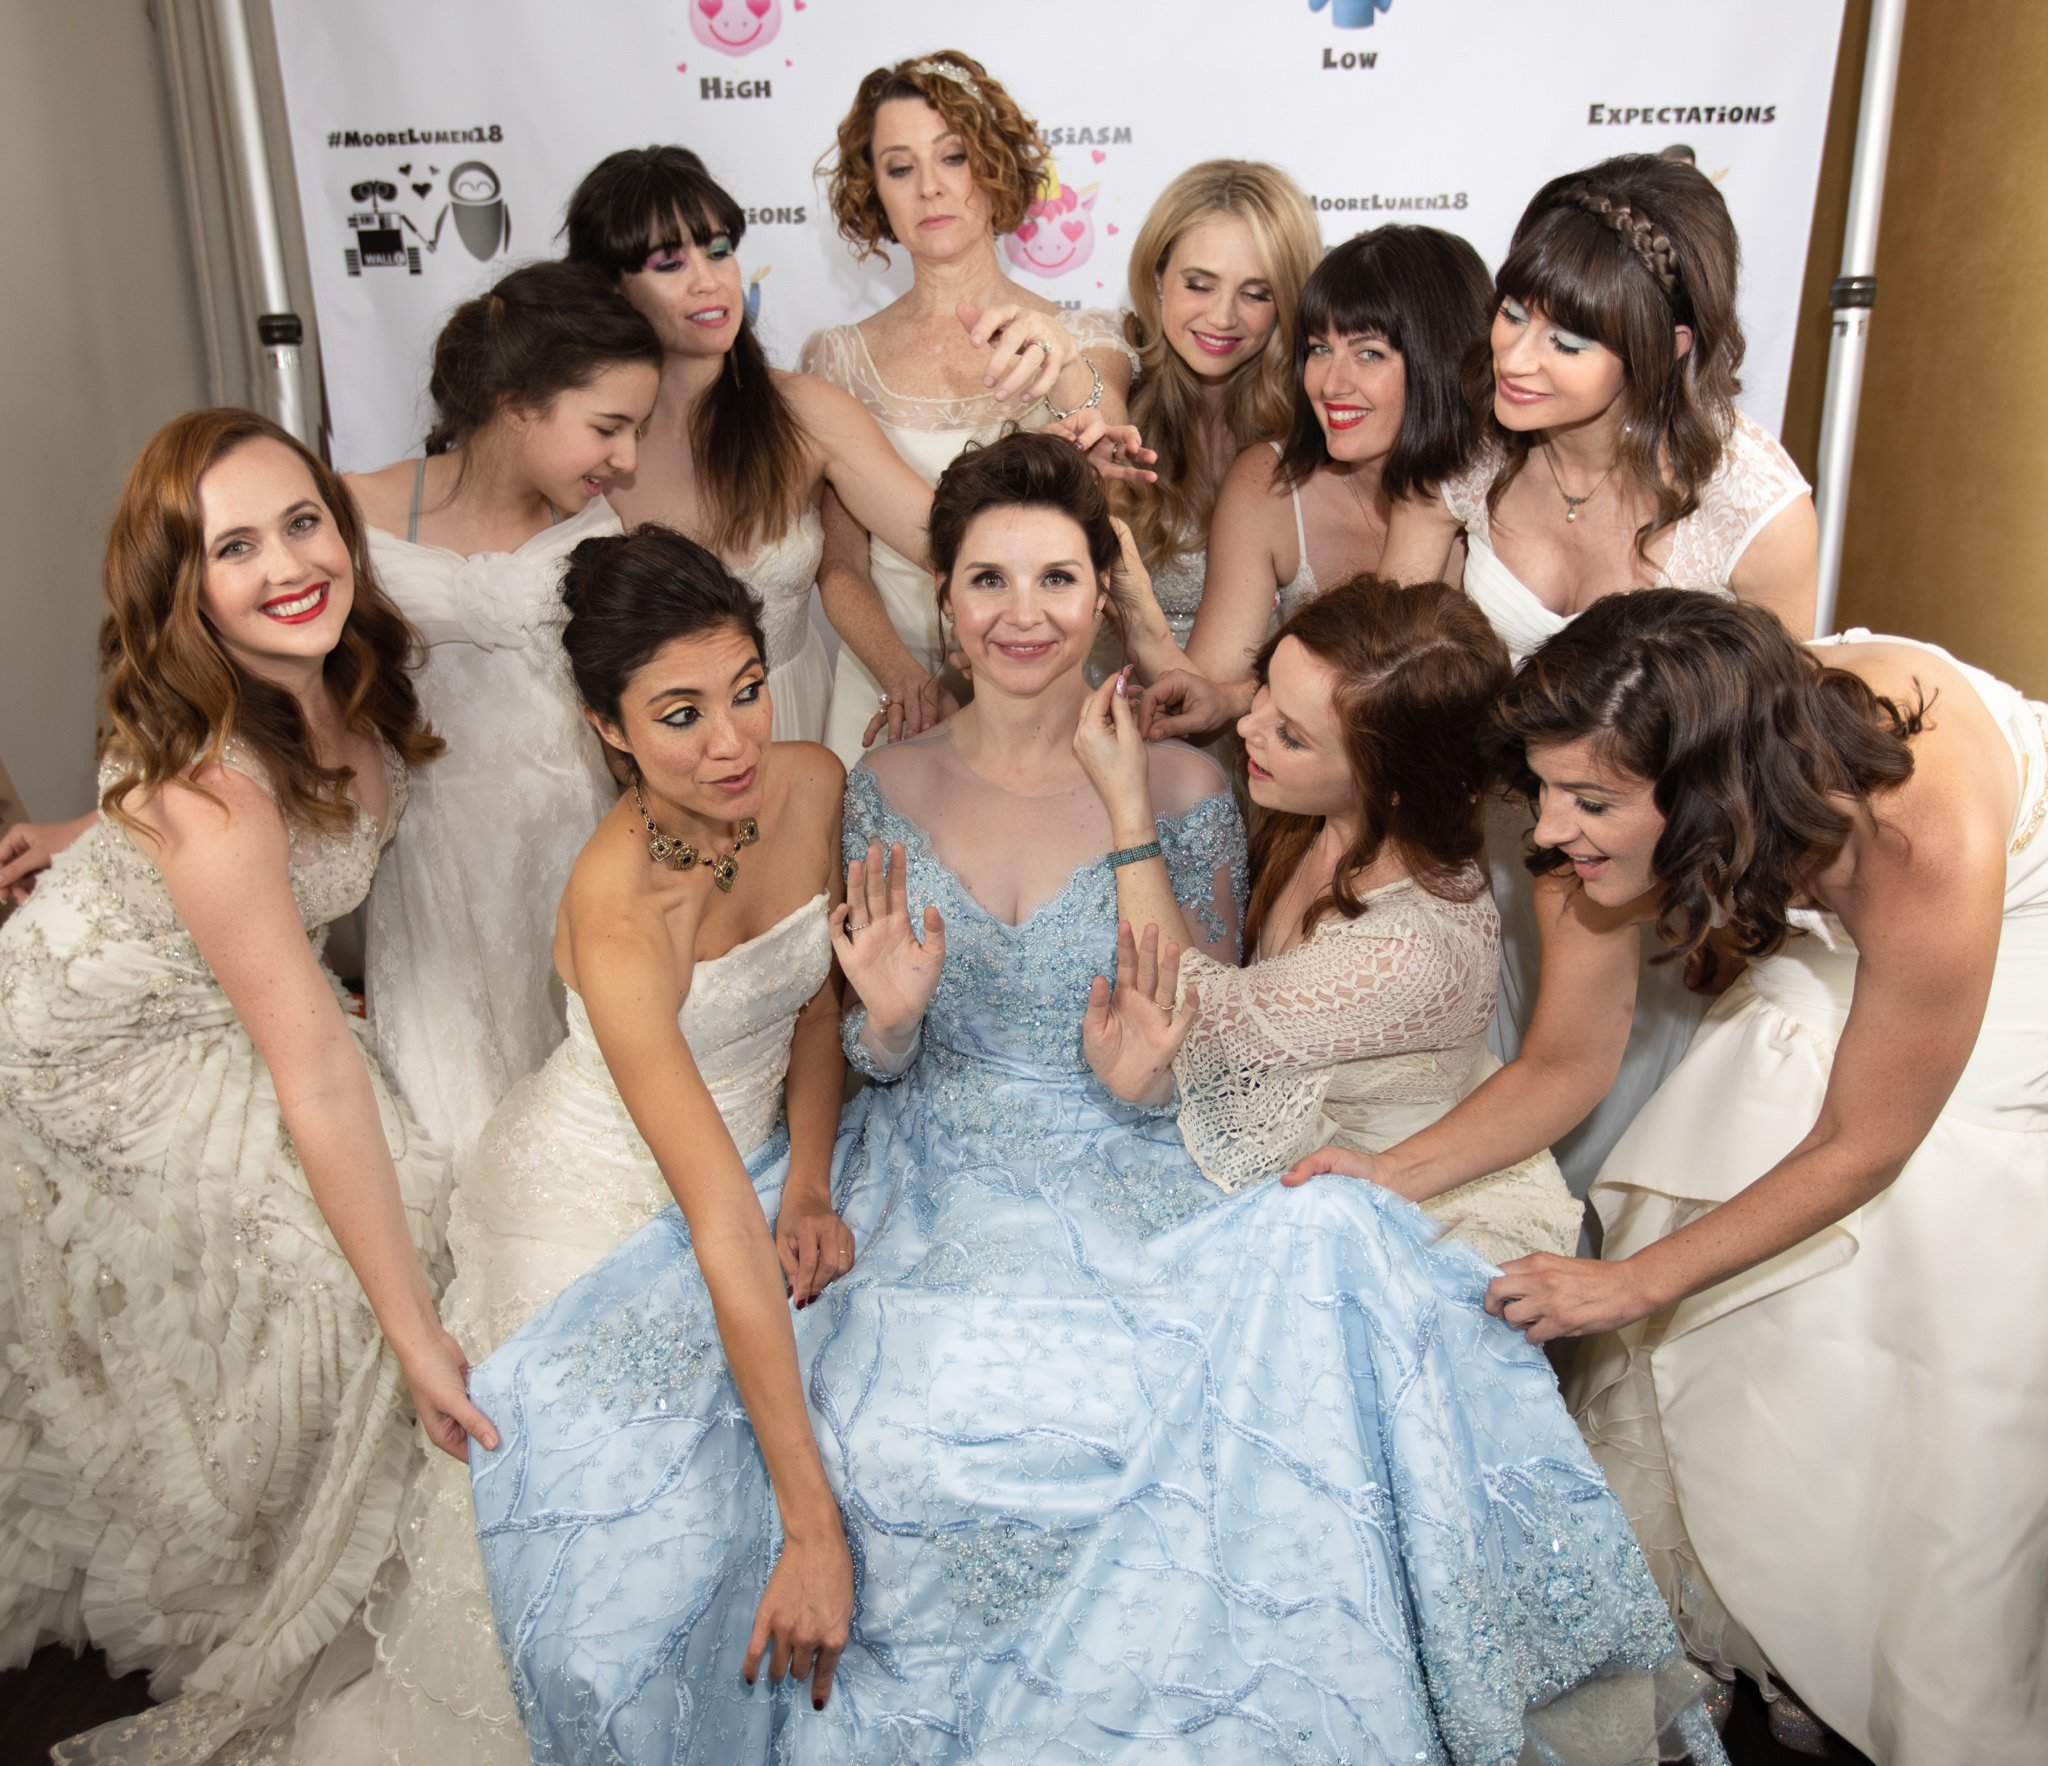 A newly married couple's 'non-traditional' dress code for their wedding day required female guests to wear their old bridal gowns. Newlyweds Audrey Moore and Jesse Luman, who live in Los Angeles, California, wanted their guests to have the opportunity to re-wear their old wedding dresses - something most people only get to wear once.